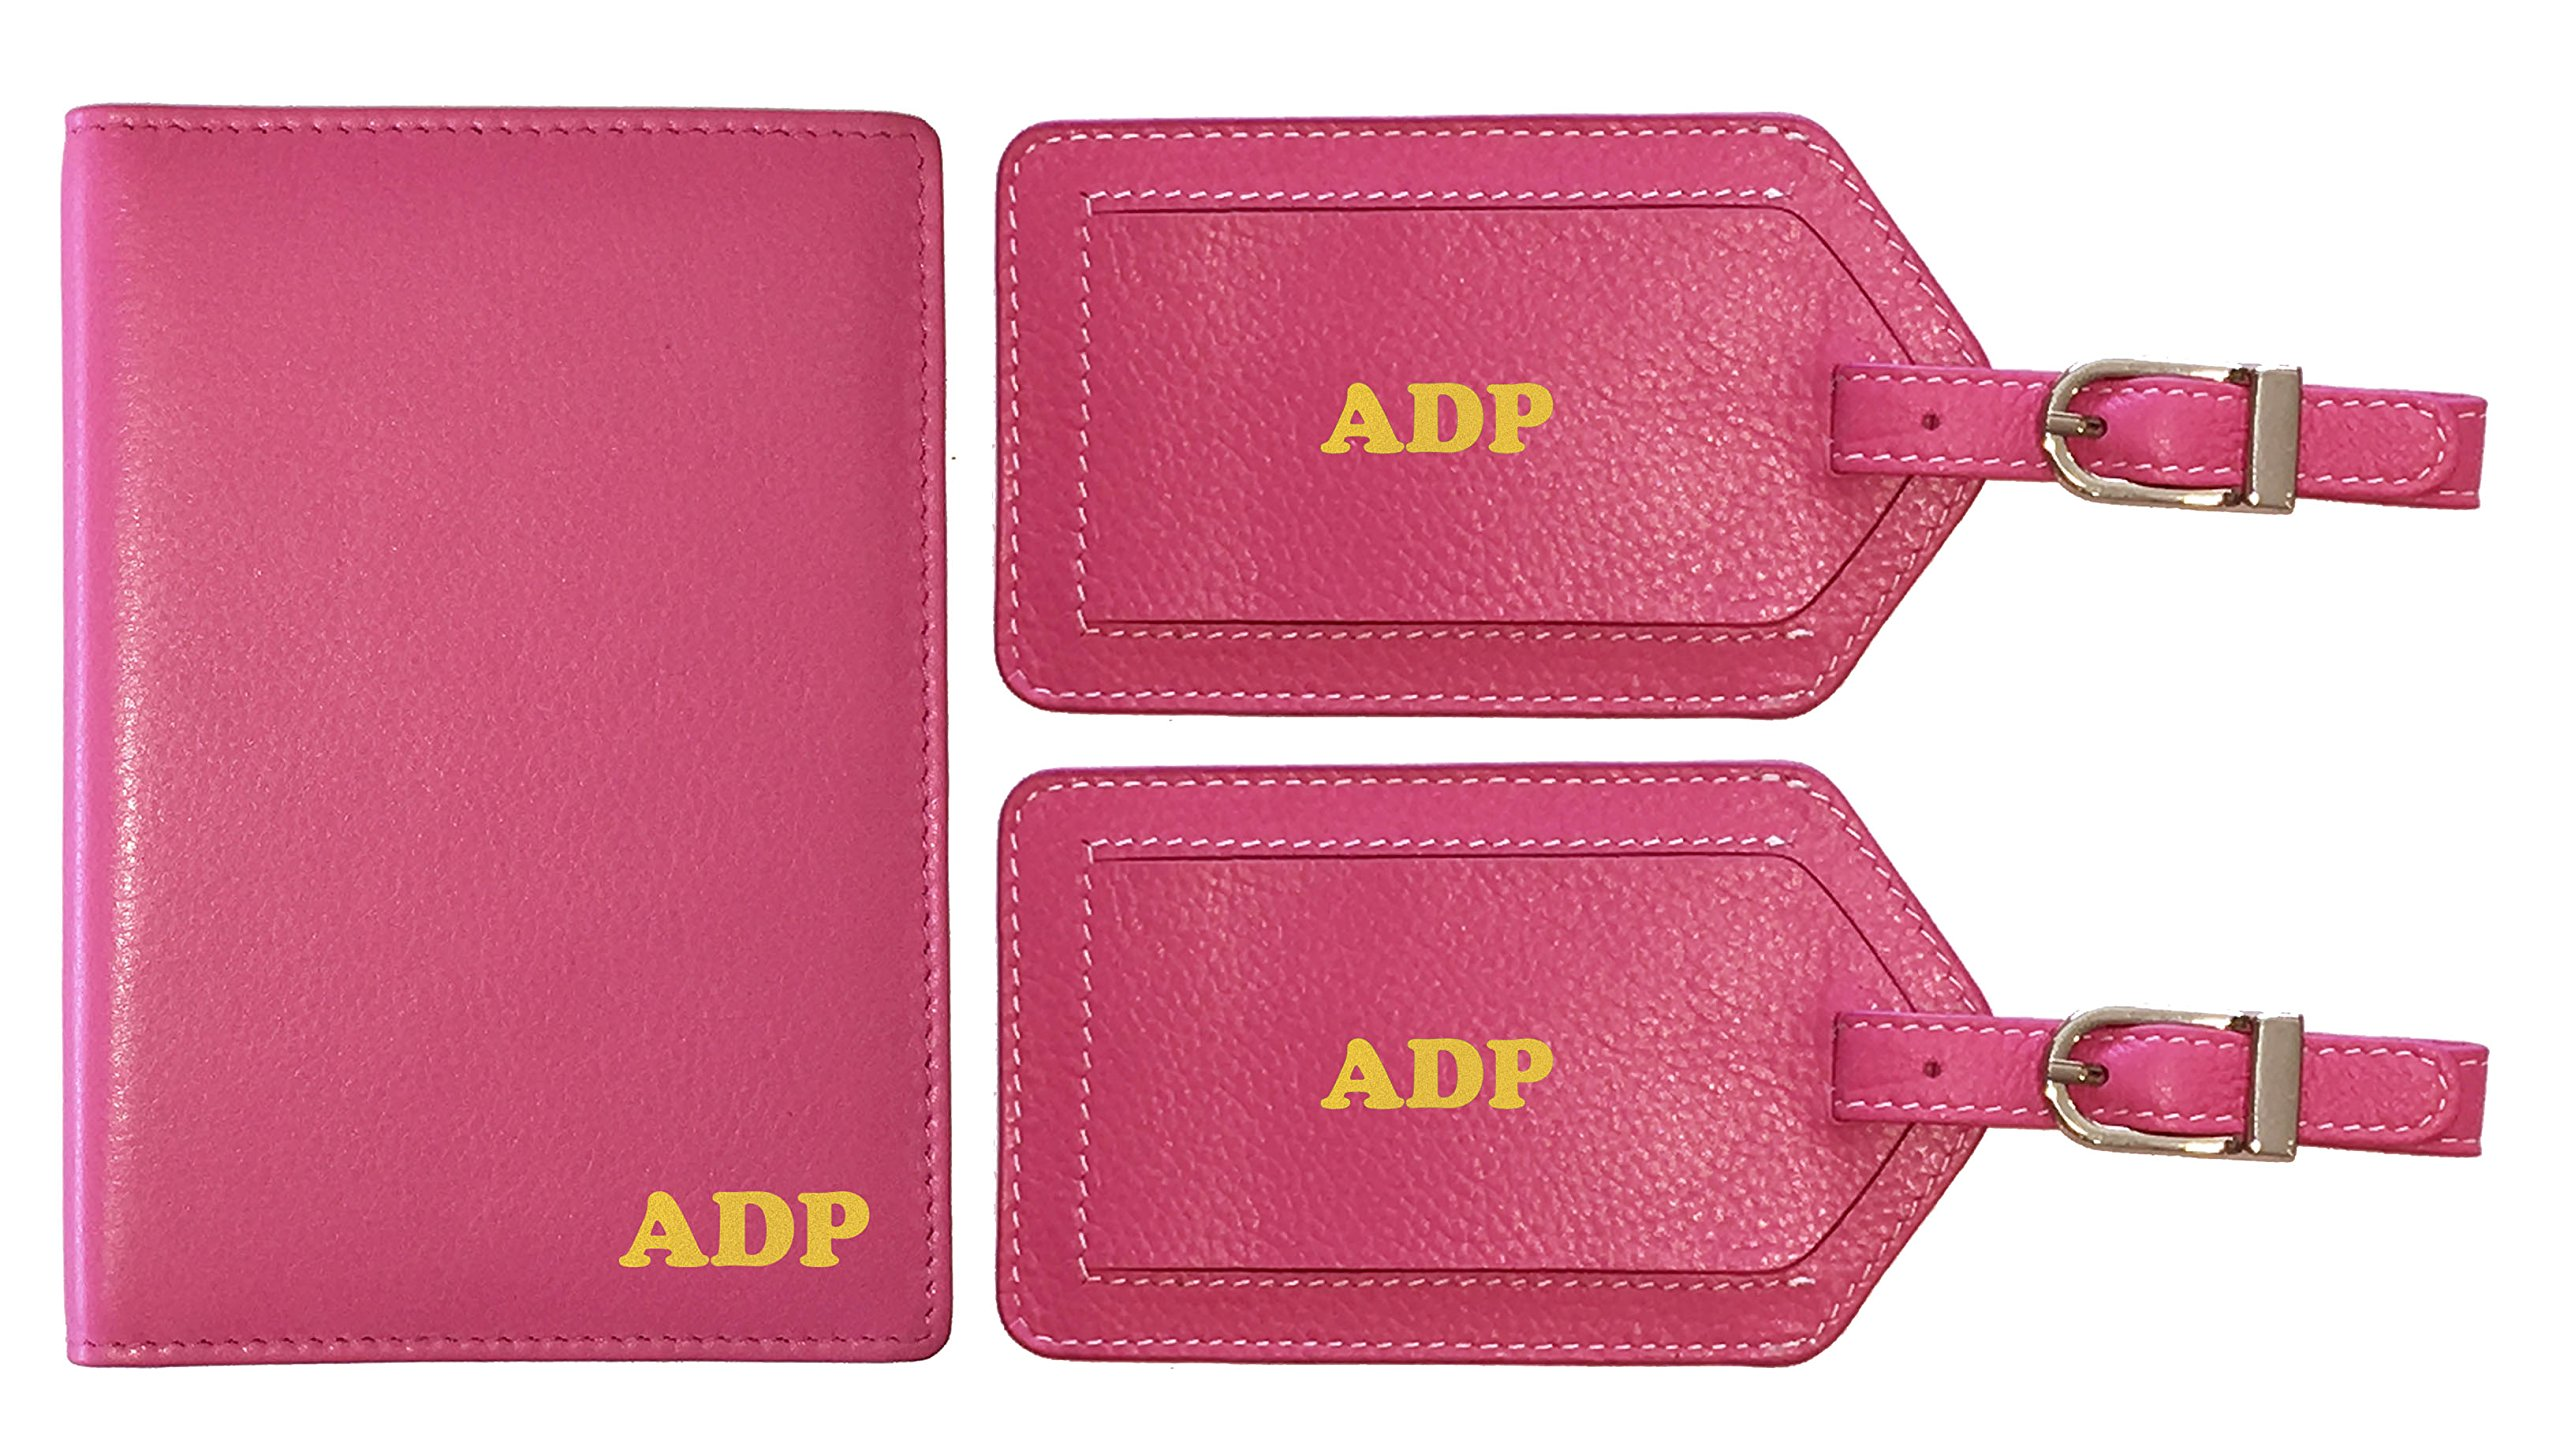 Personalized Monogrammed Hot Pink Leather RFID Passport Wallet and 2 Luggage Tags by 123 Cheap Checks